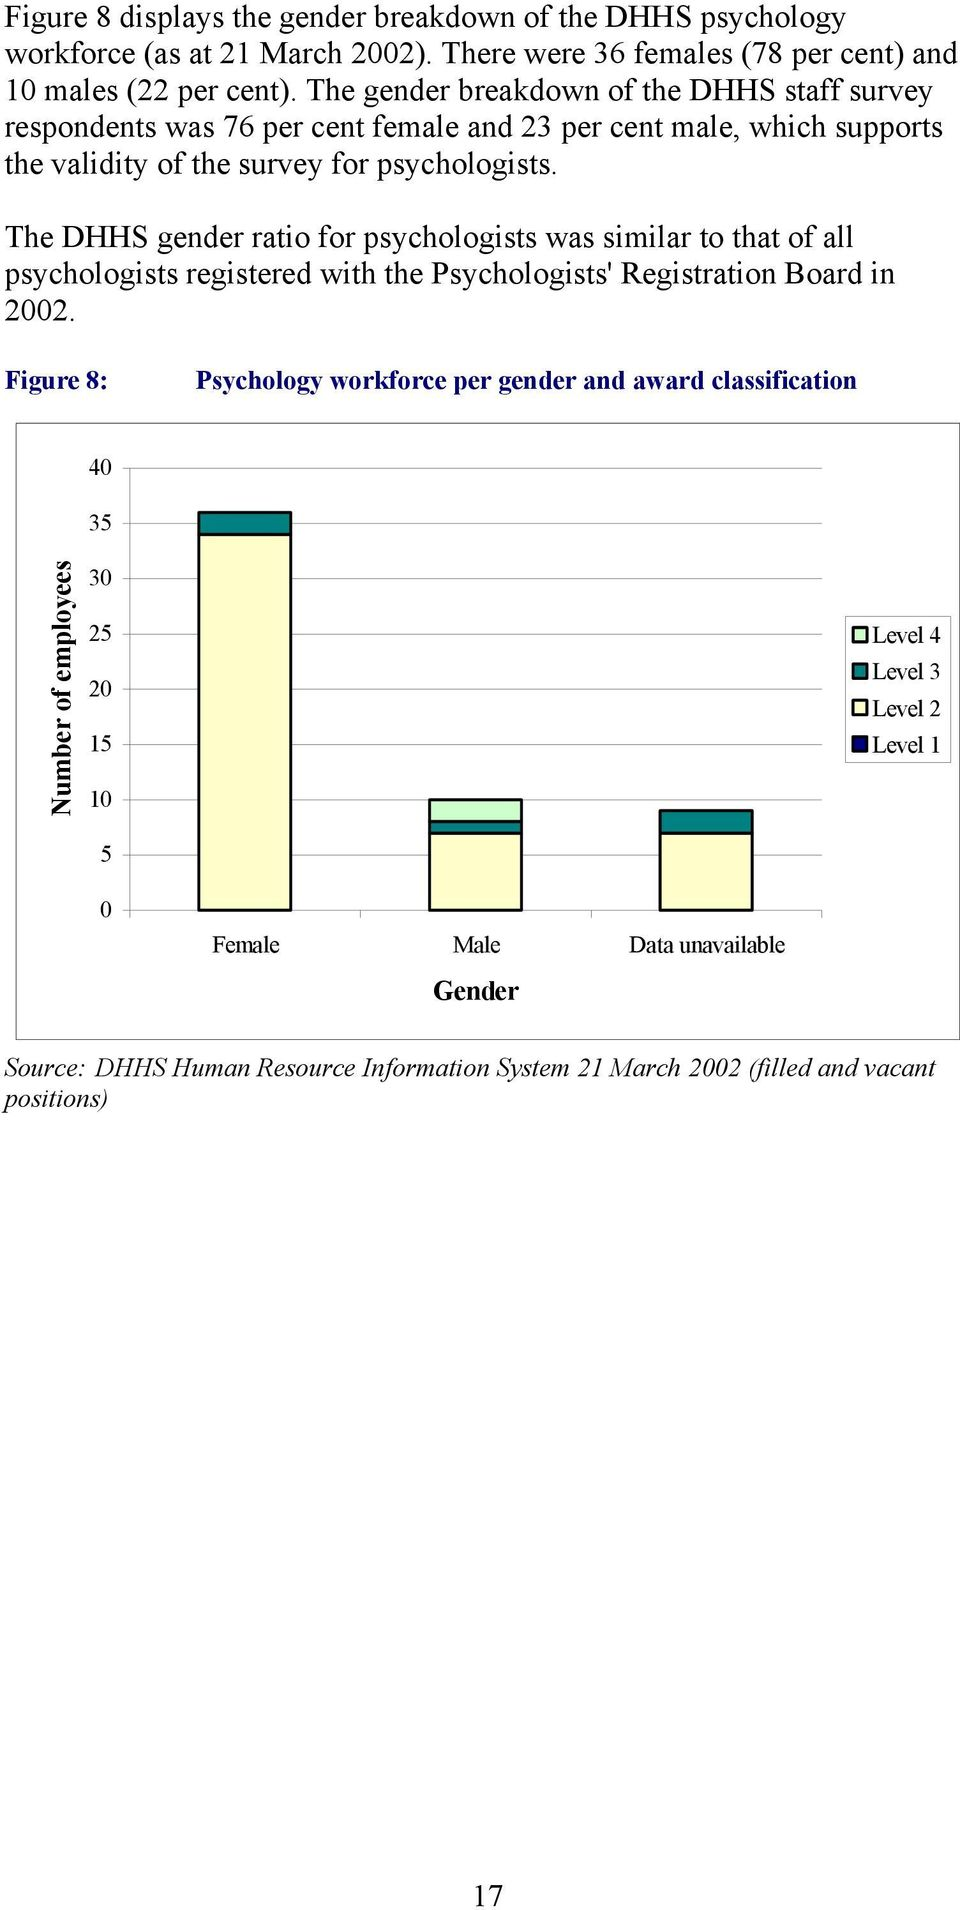 The DHHS gender ratio for psychologists was similar to that of all psychologists registered with the Psychologists' Registration Board in 2002.